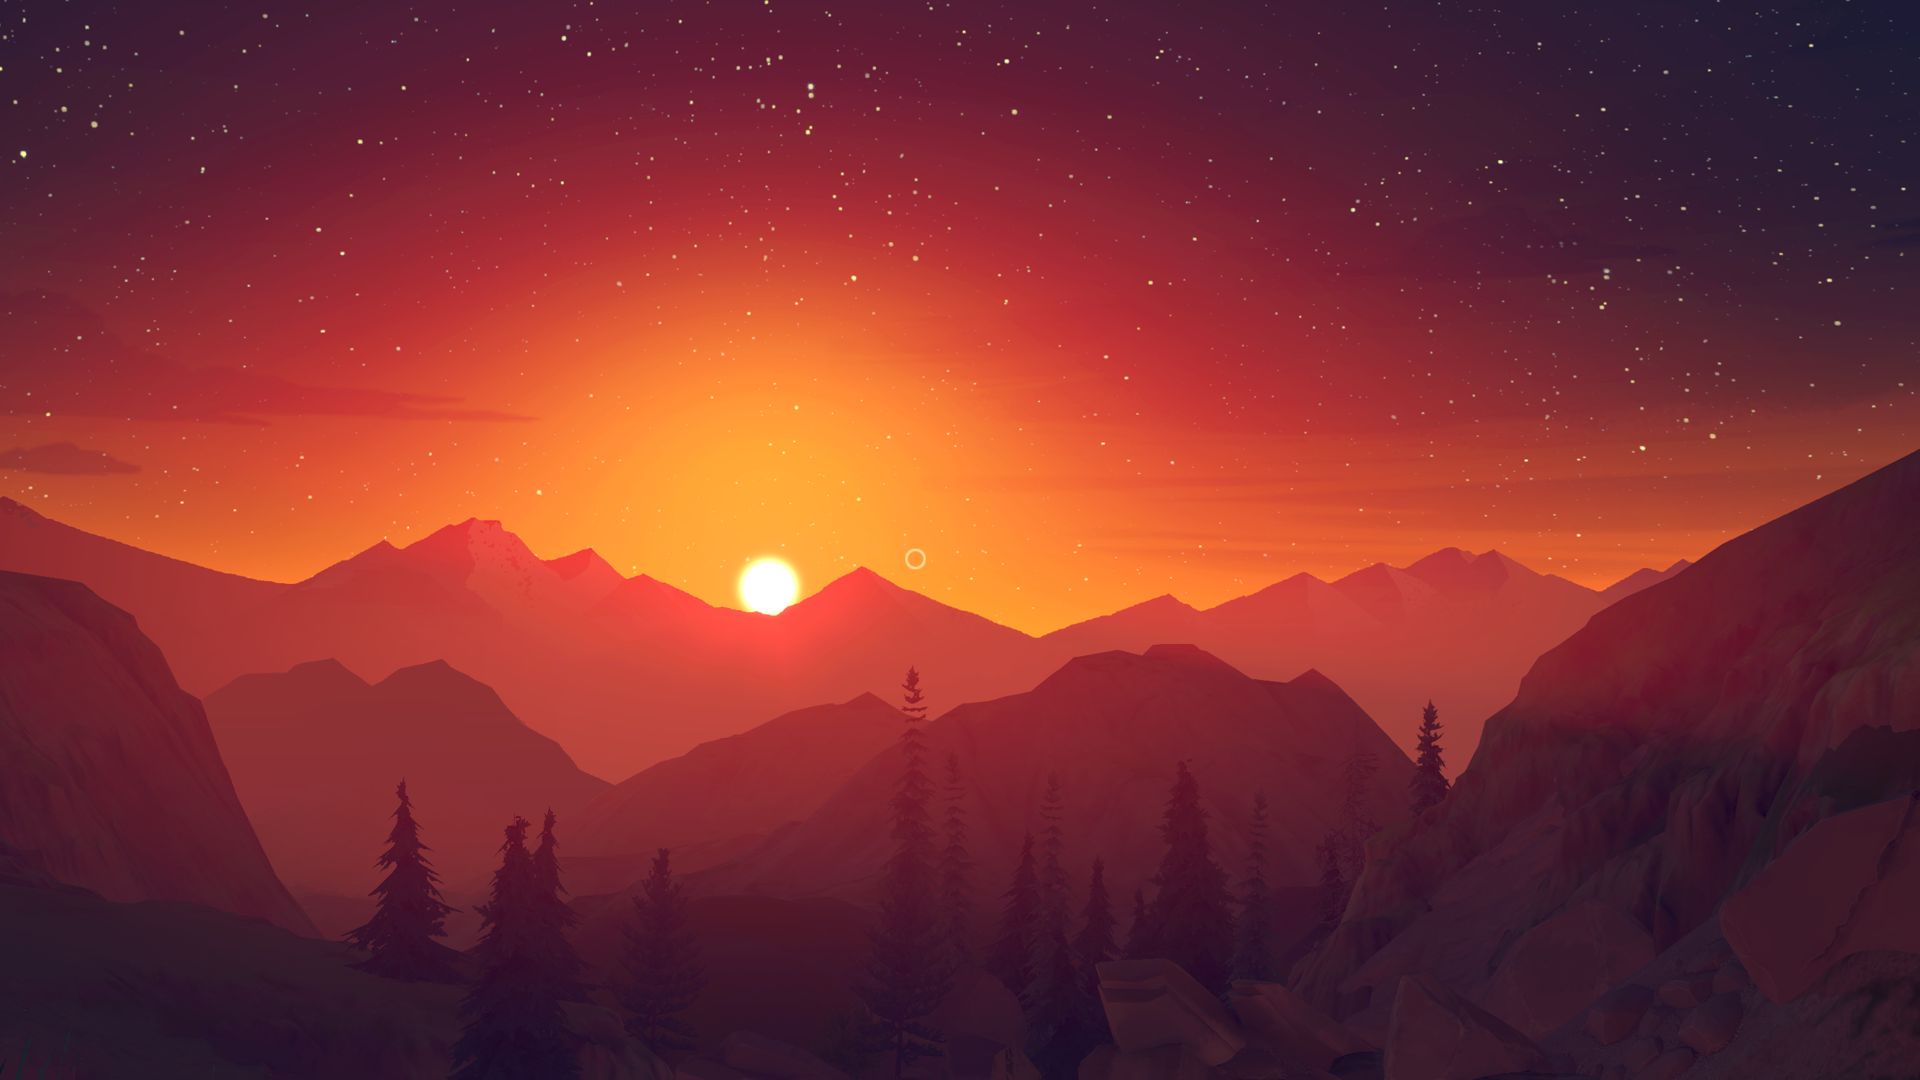 11 Stunning Desktop Wallpapers From The Firewatch Game